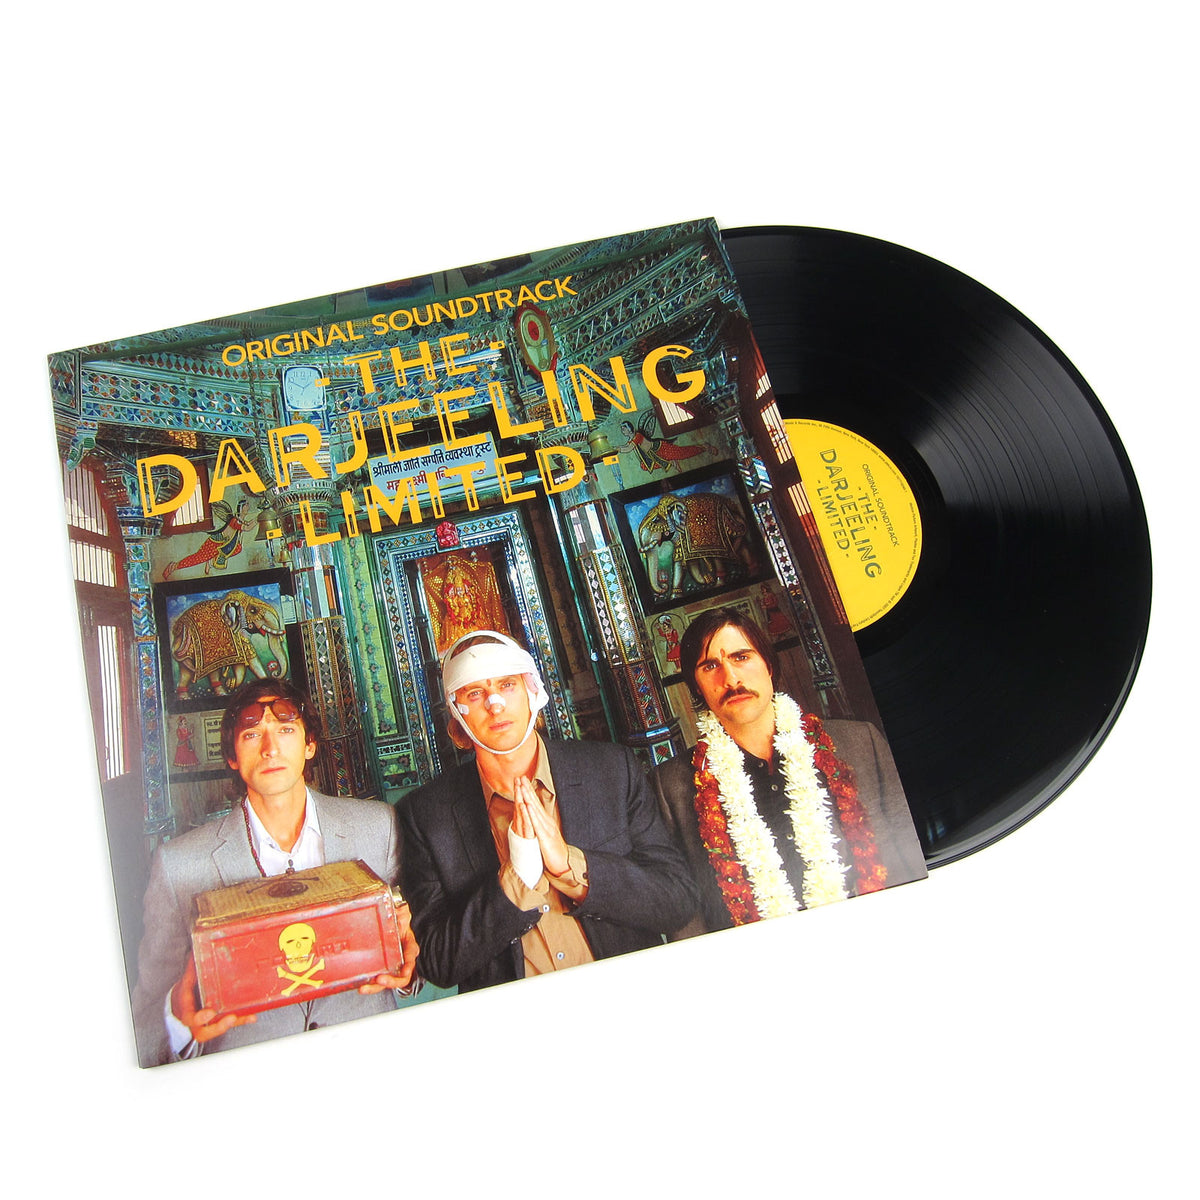 The Darjeeling Limited: The Darjeeling Limited Original Soundtrack Vinyl LP